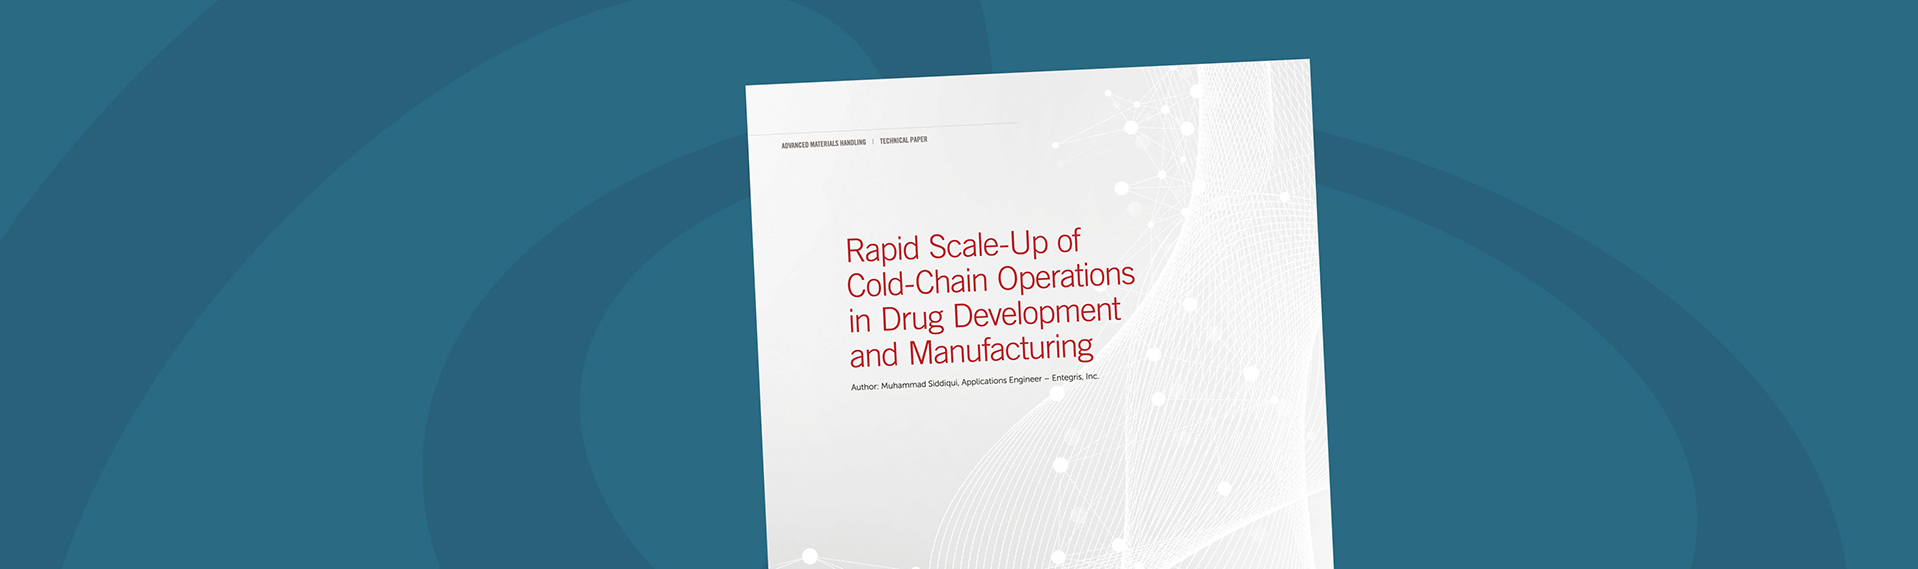 rapid-scale-up-of-cold-chain-ops-tp-11806-desktop-1918x568